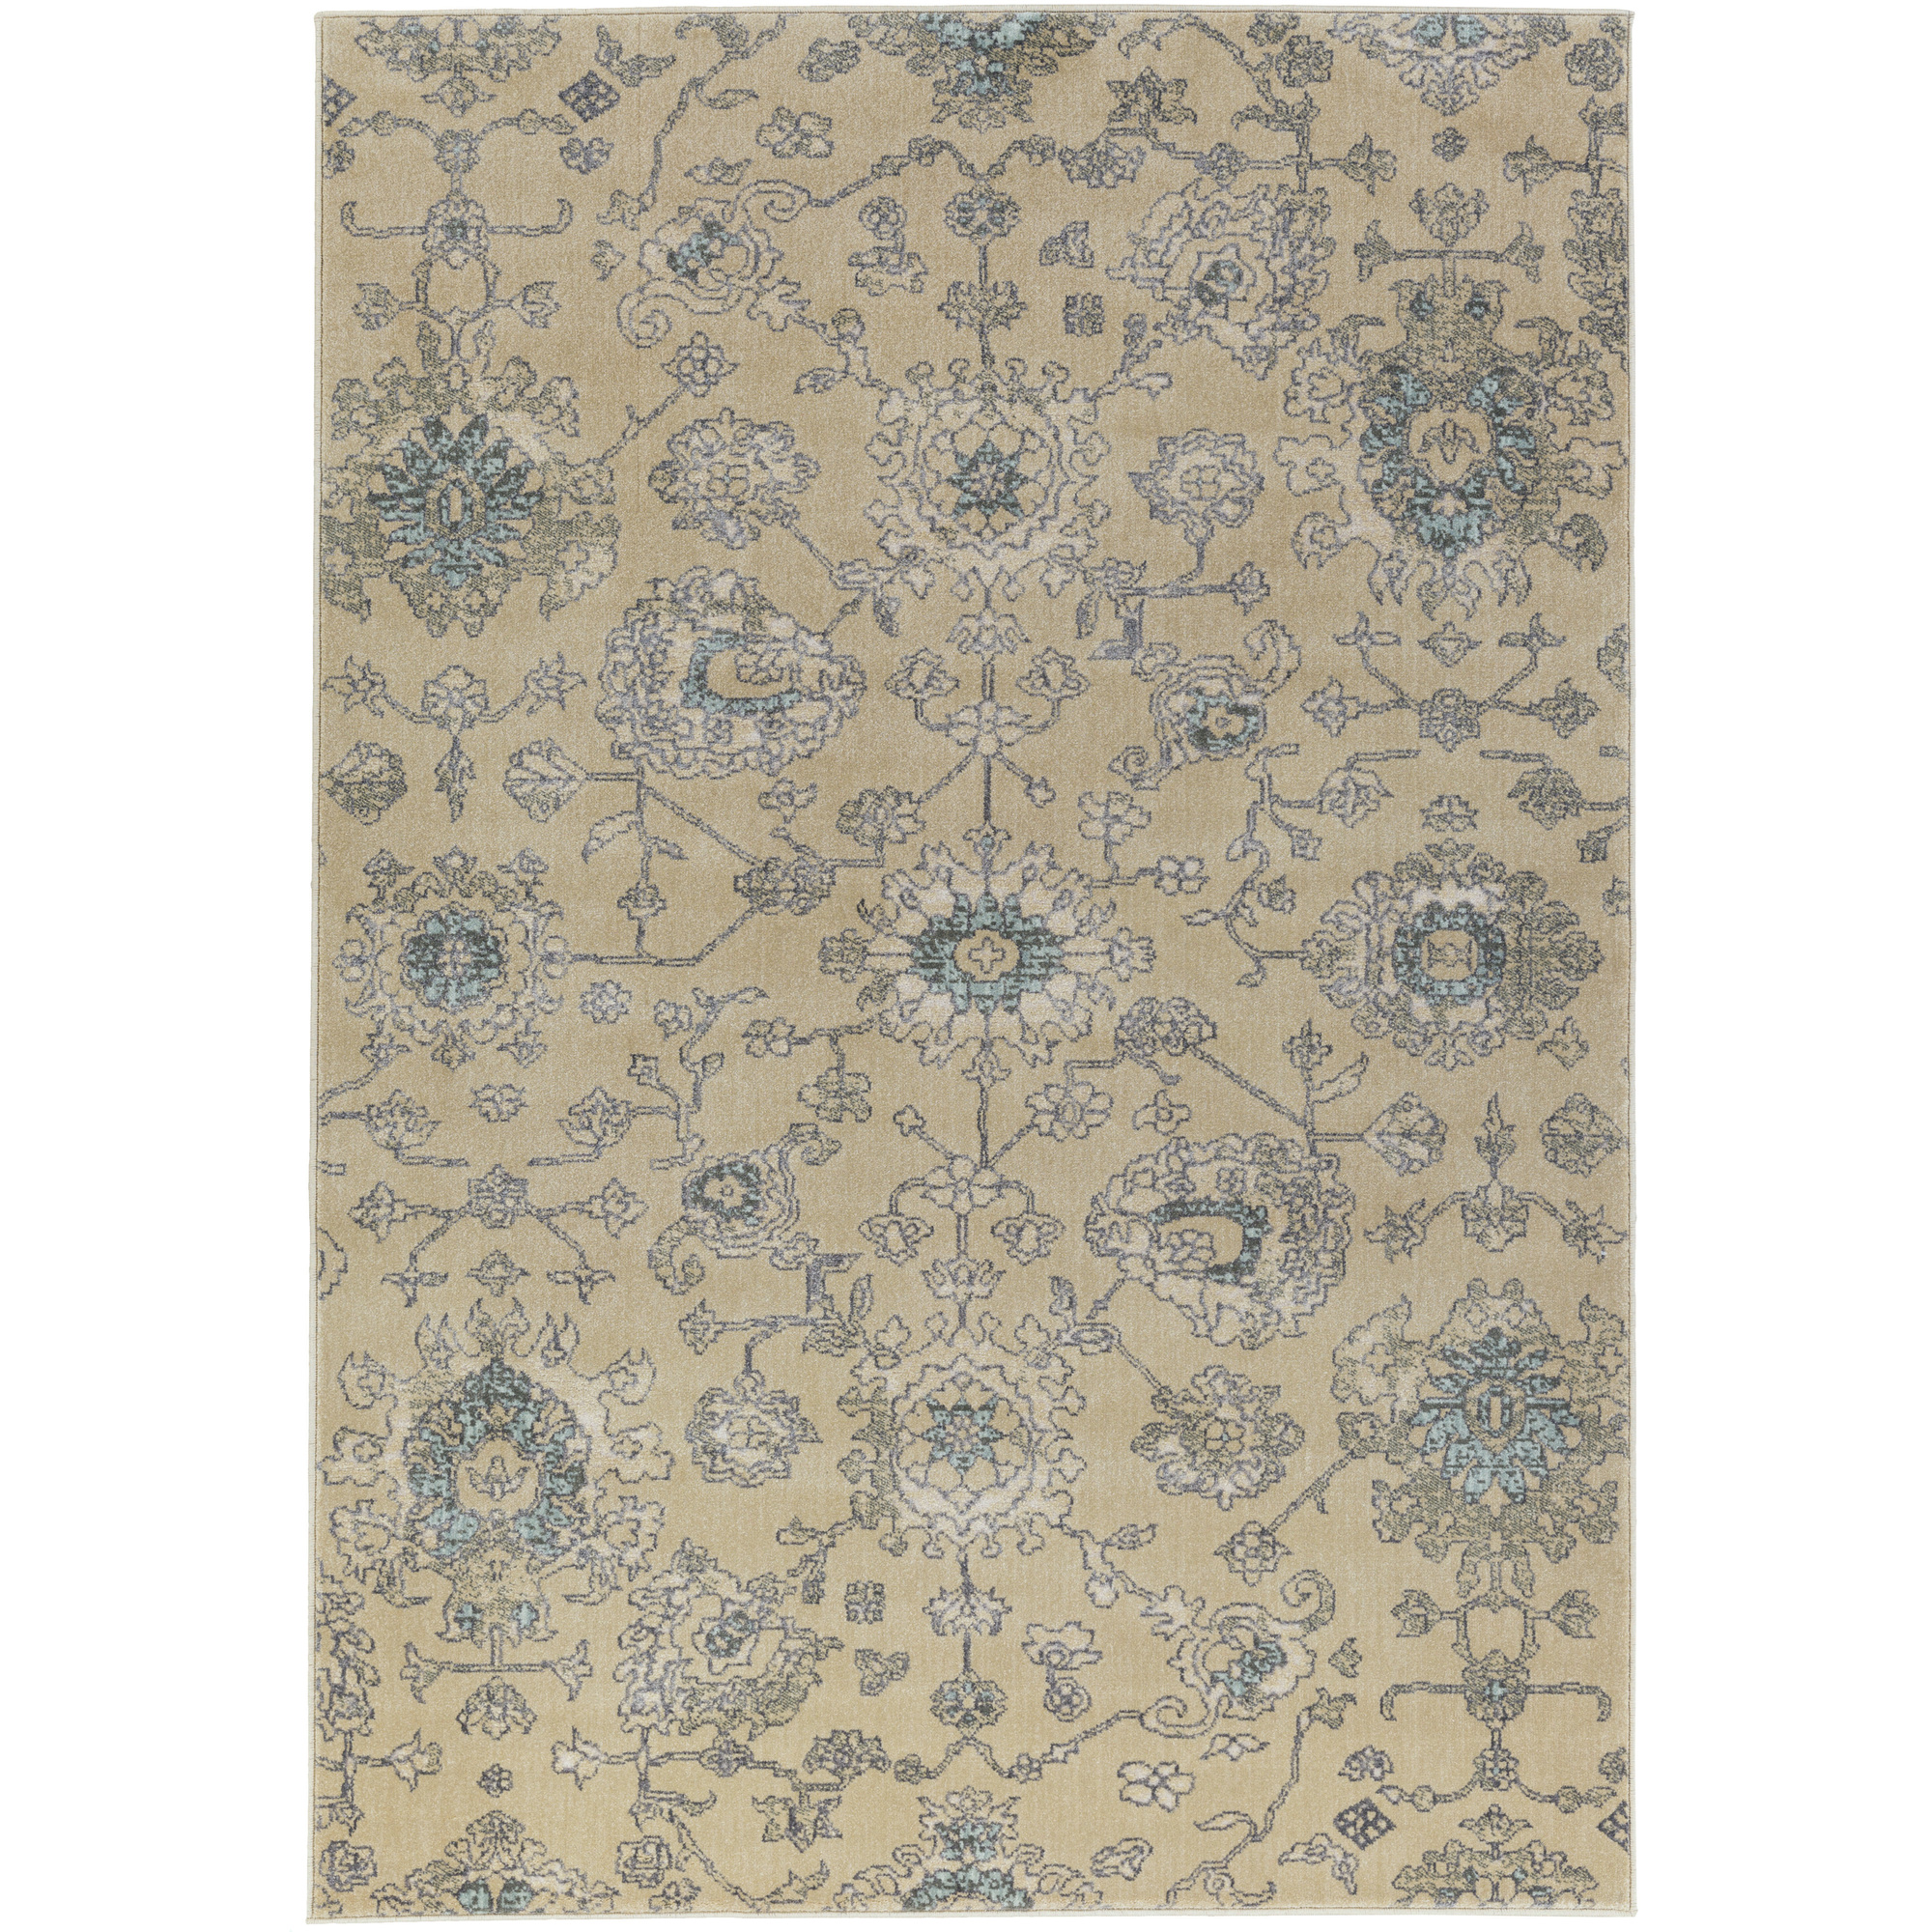 "Art of Knot Yasmin 5'3"" x 7'3"" Rectangular Area Rug"